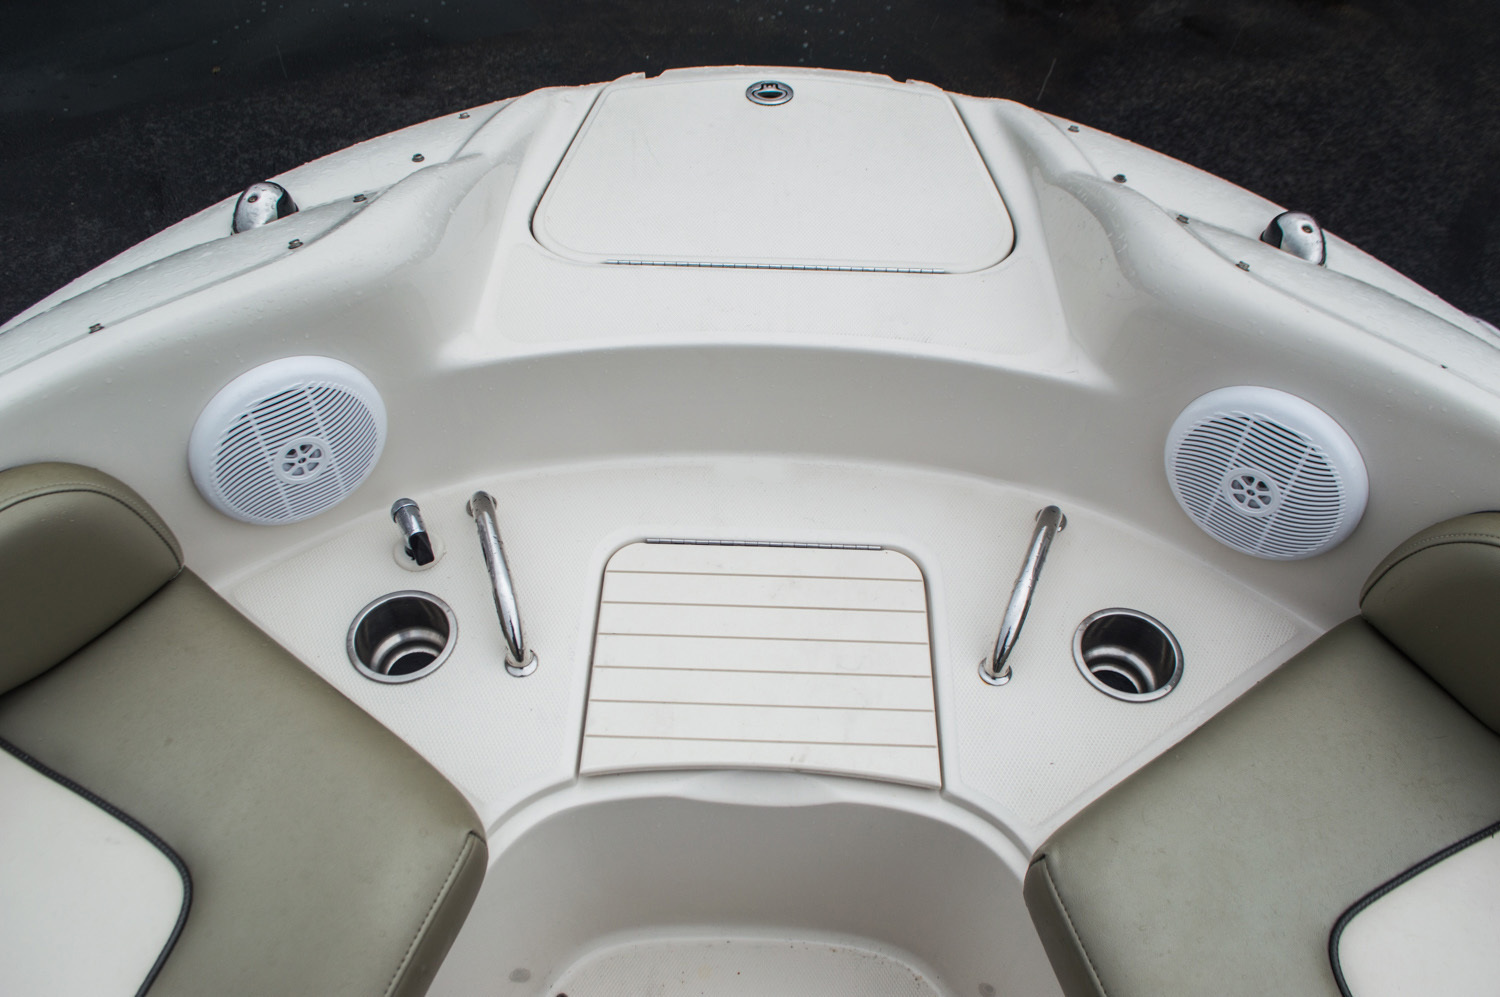 Thumbnail 16 for Used 2005 Sea Ray 240 Sundeck boat for sale in West Palm Beach, FL